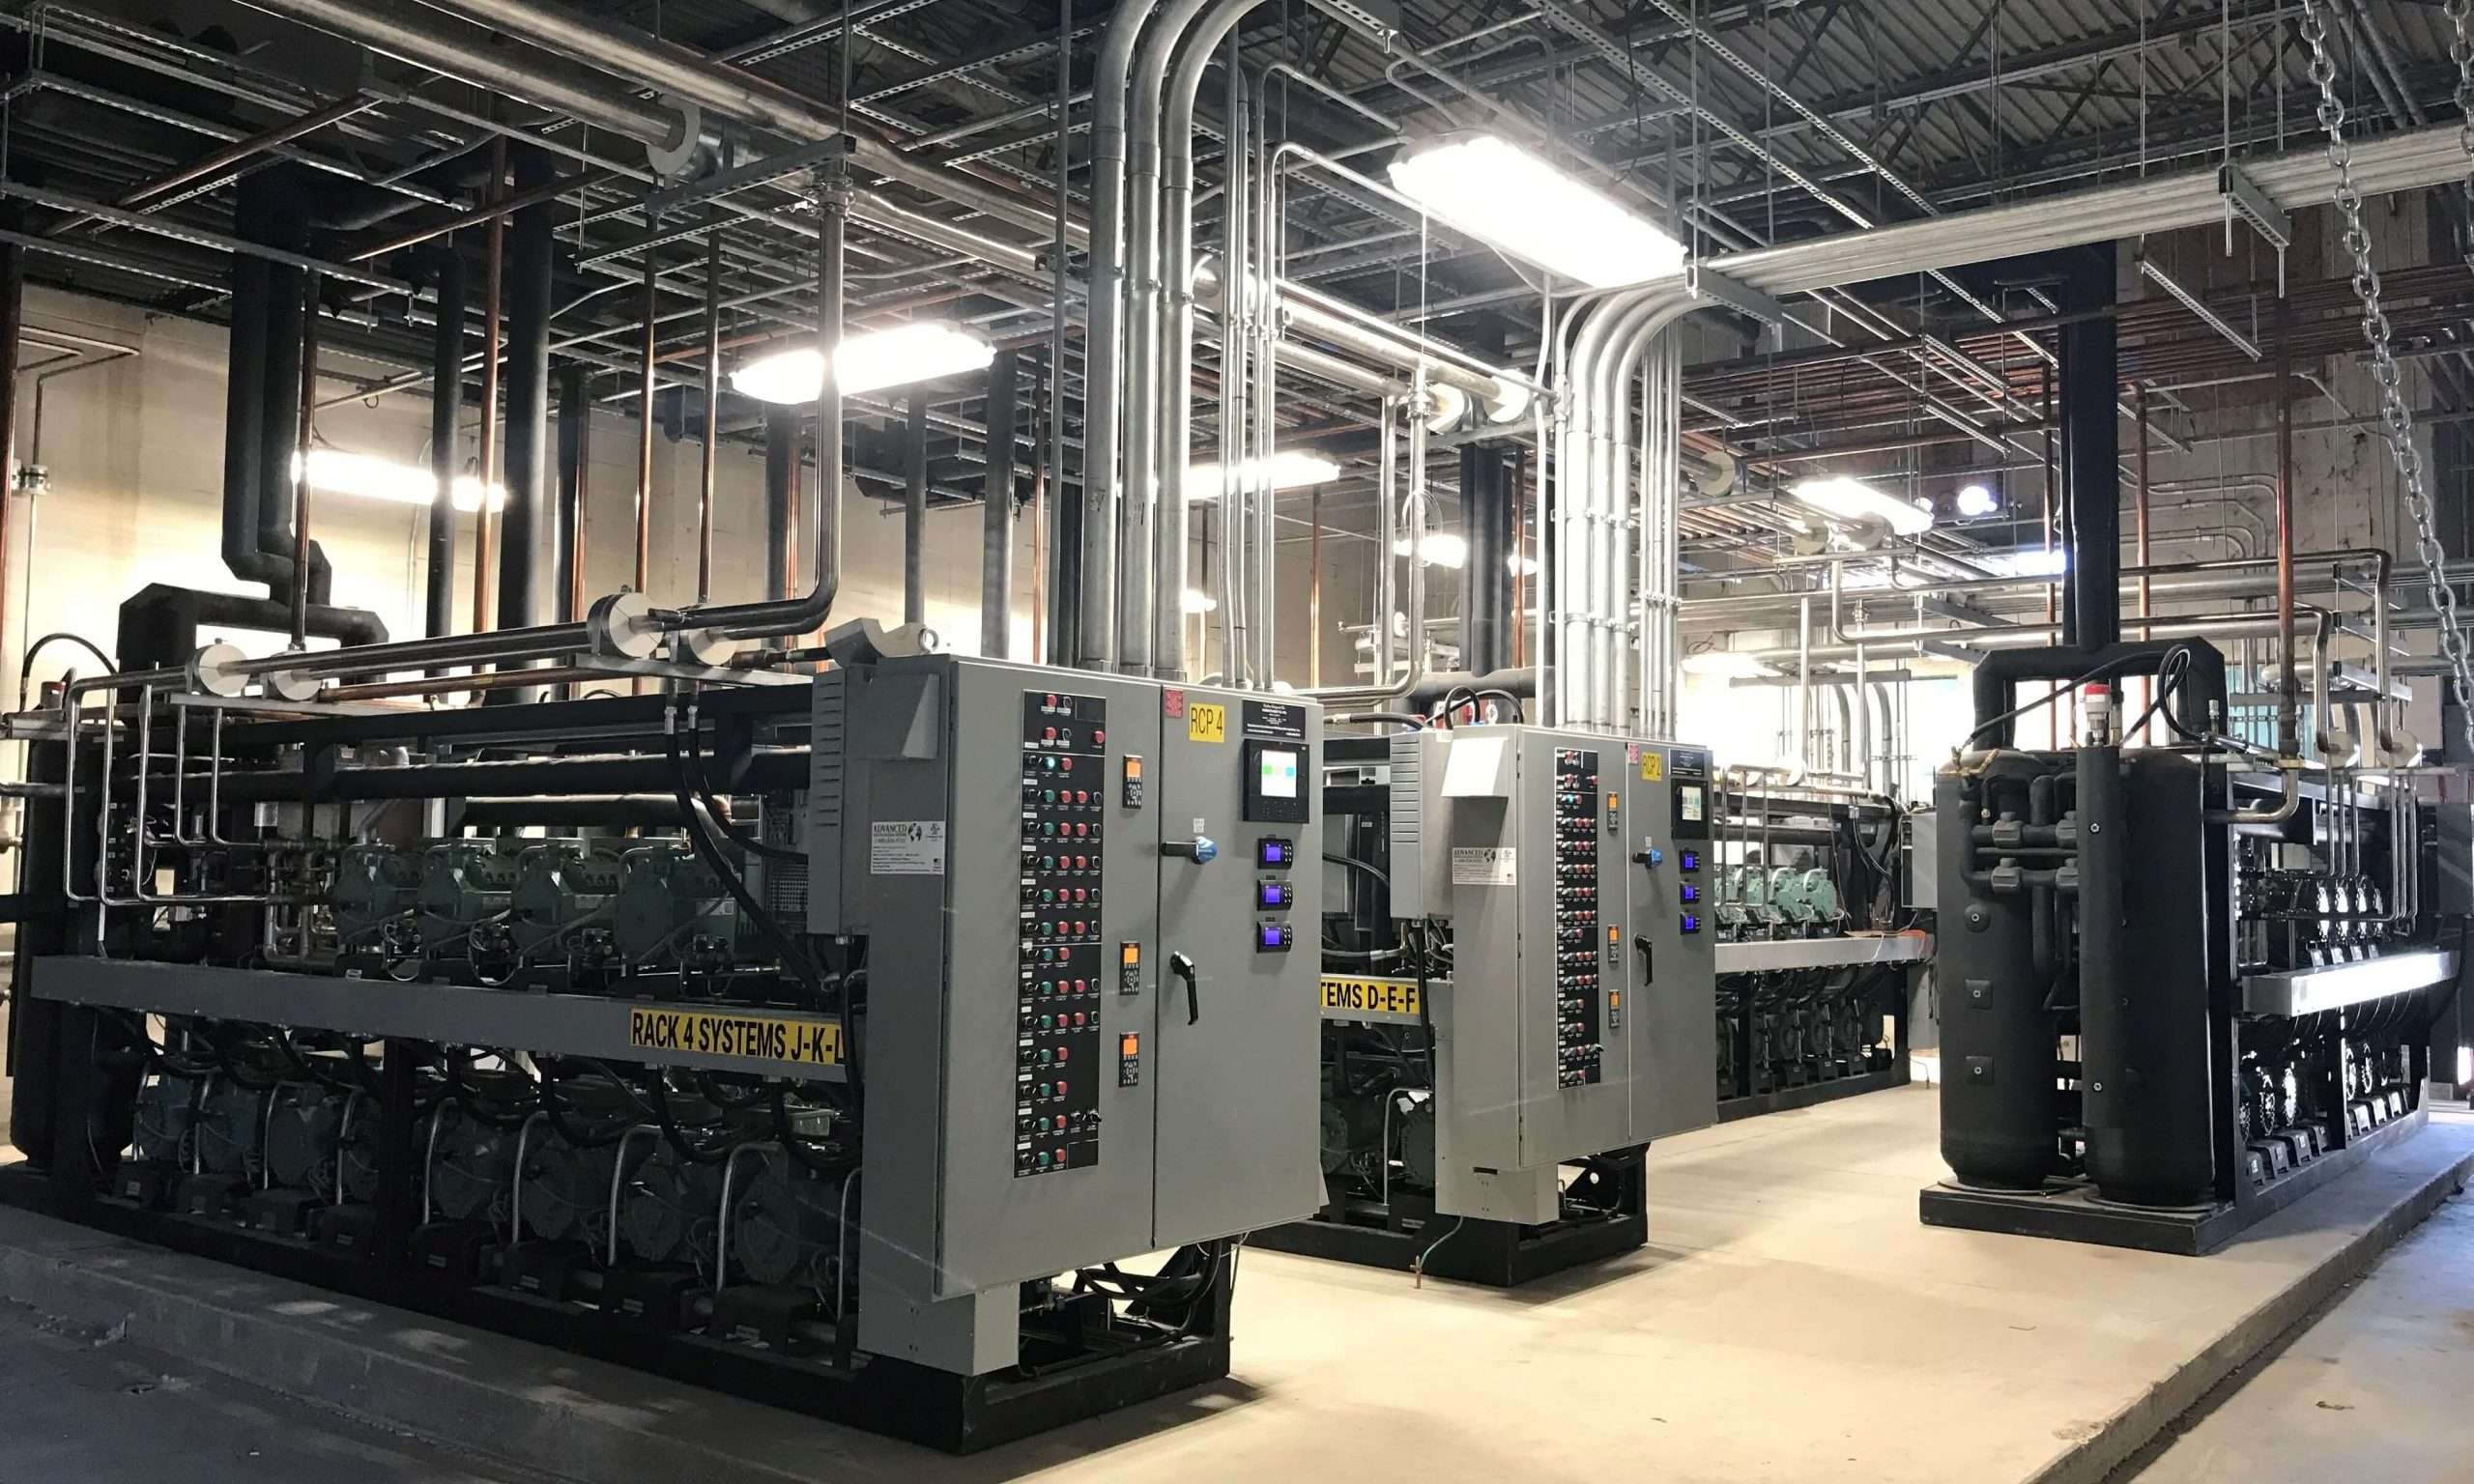 Five transcritical CO2 racks are used at Yosemite Foods.